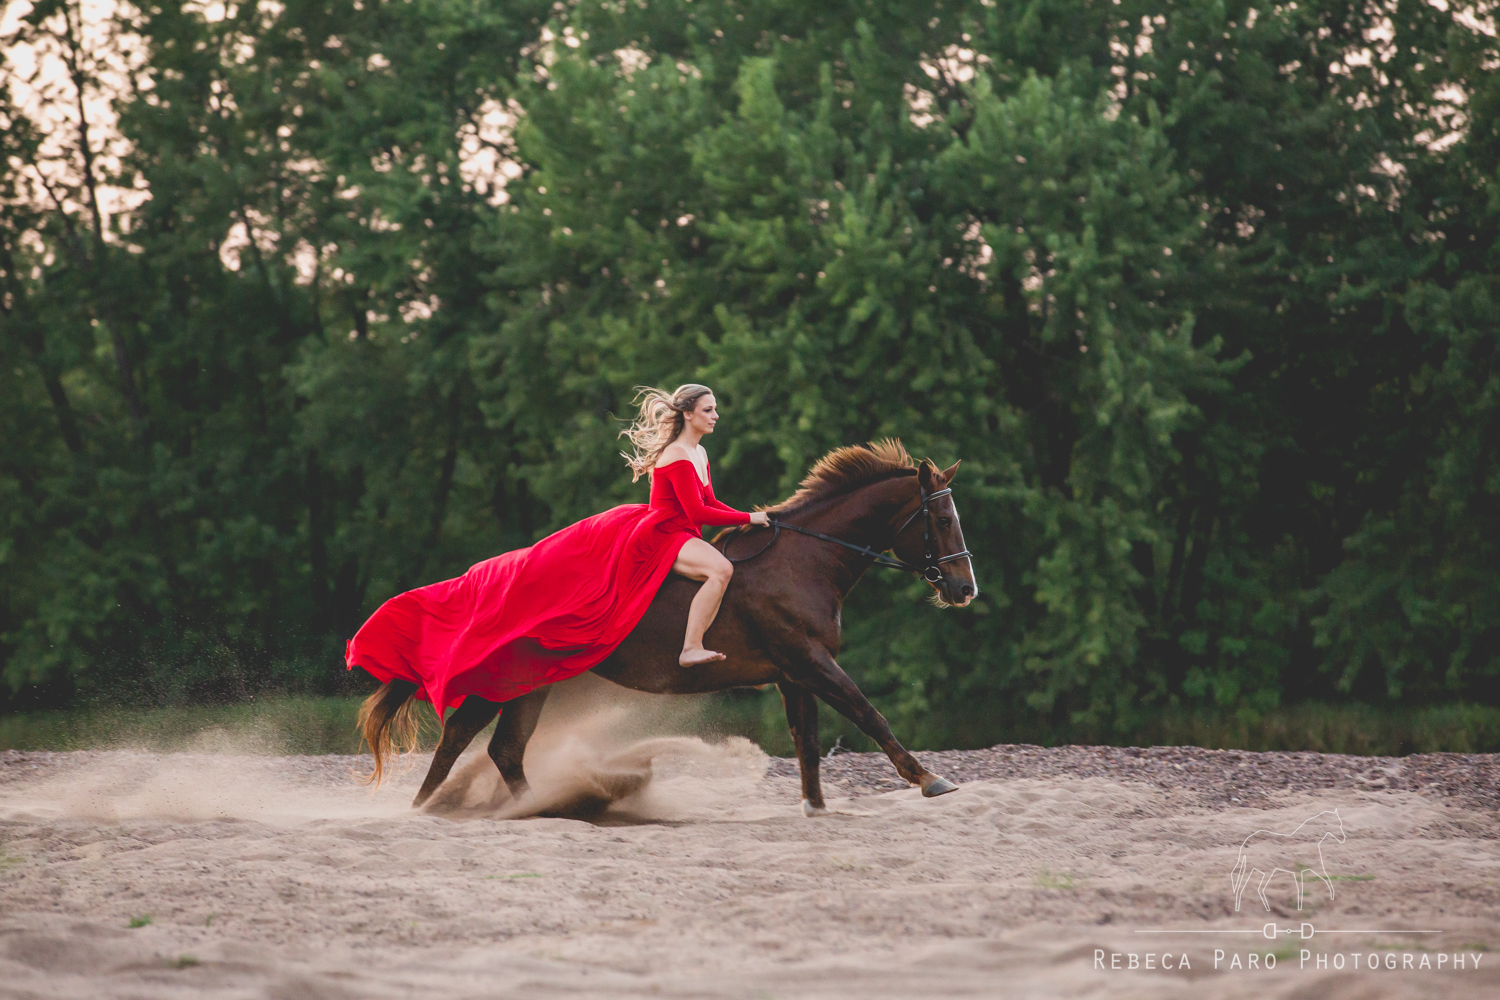 Red dress and horse on beach